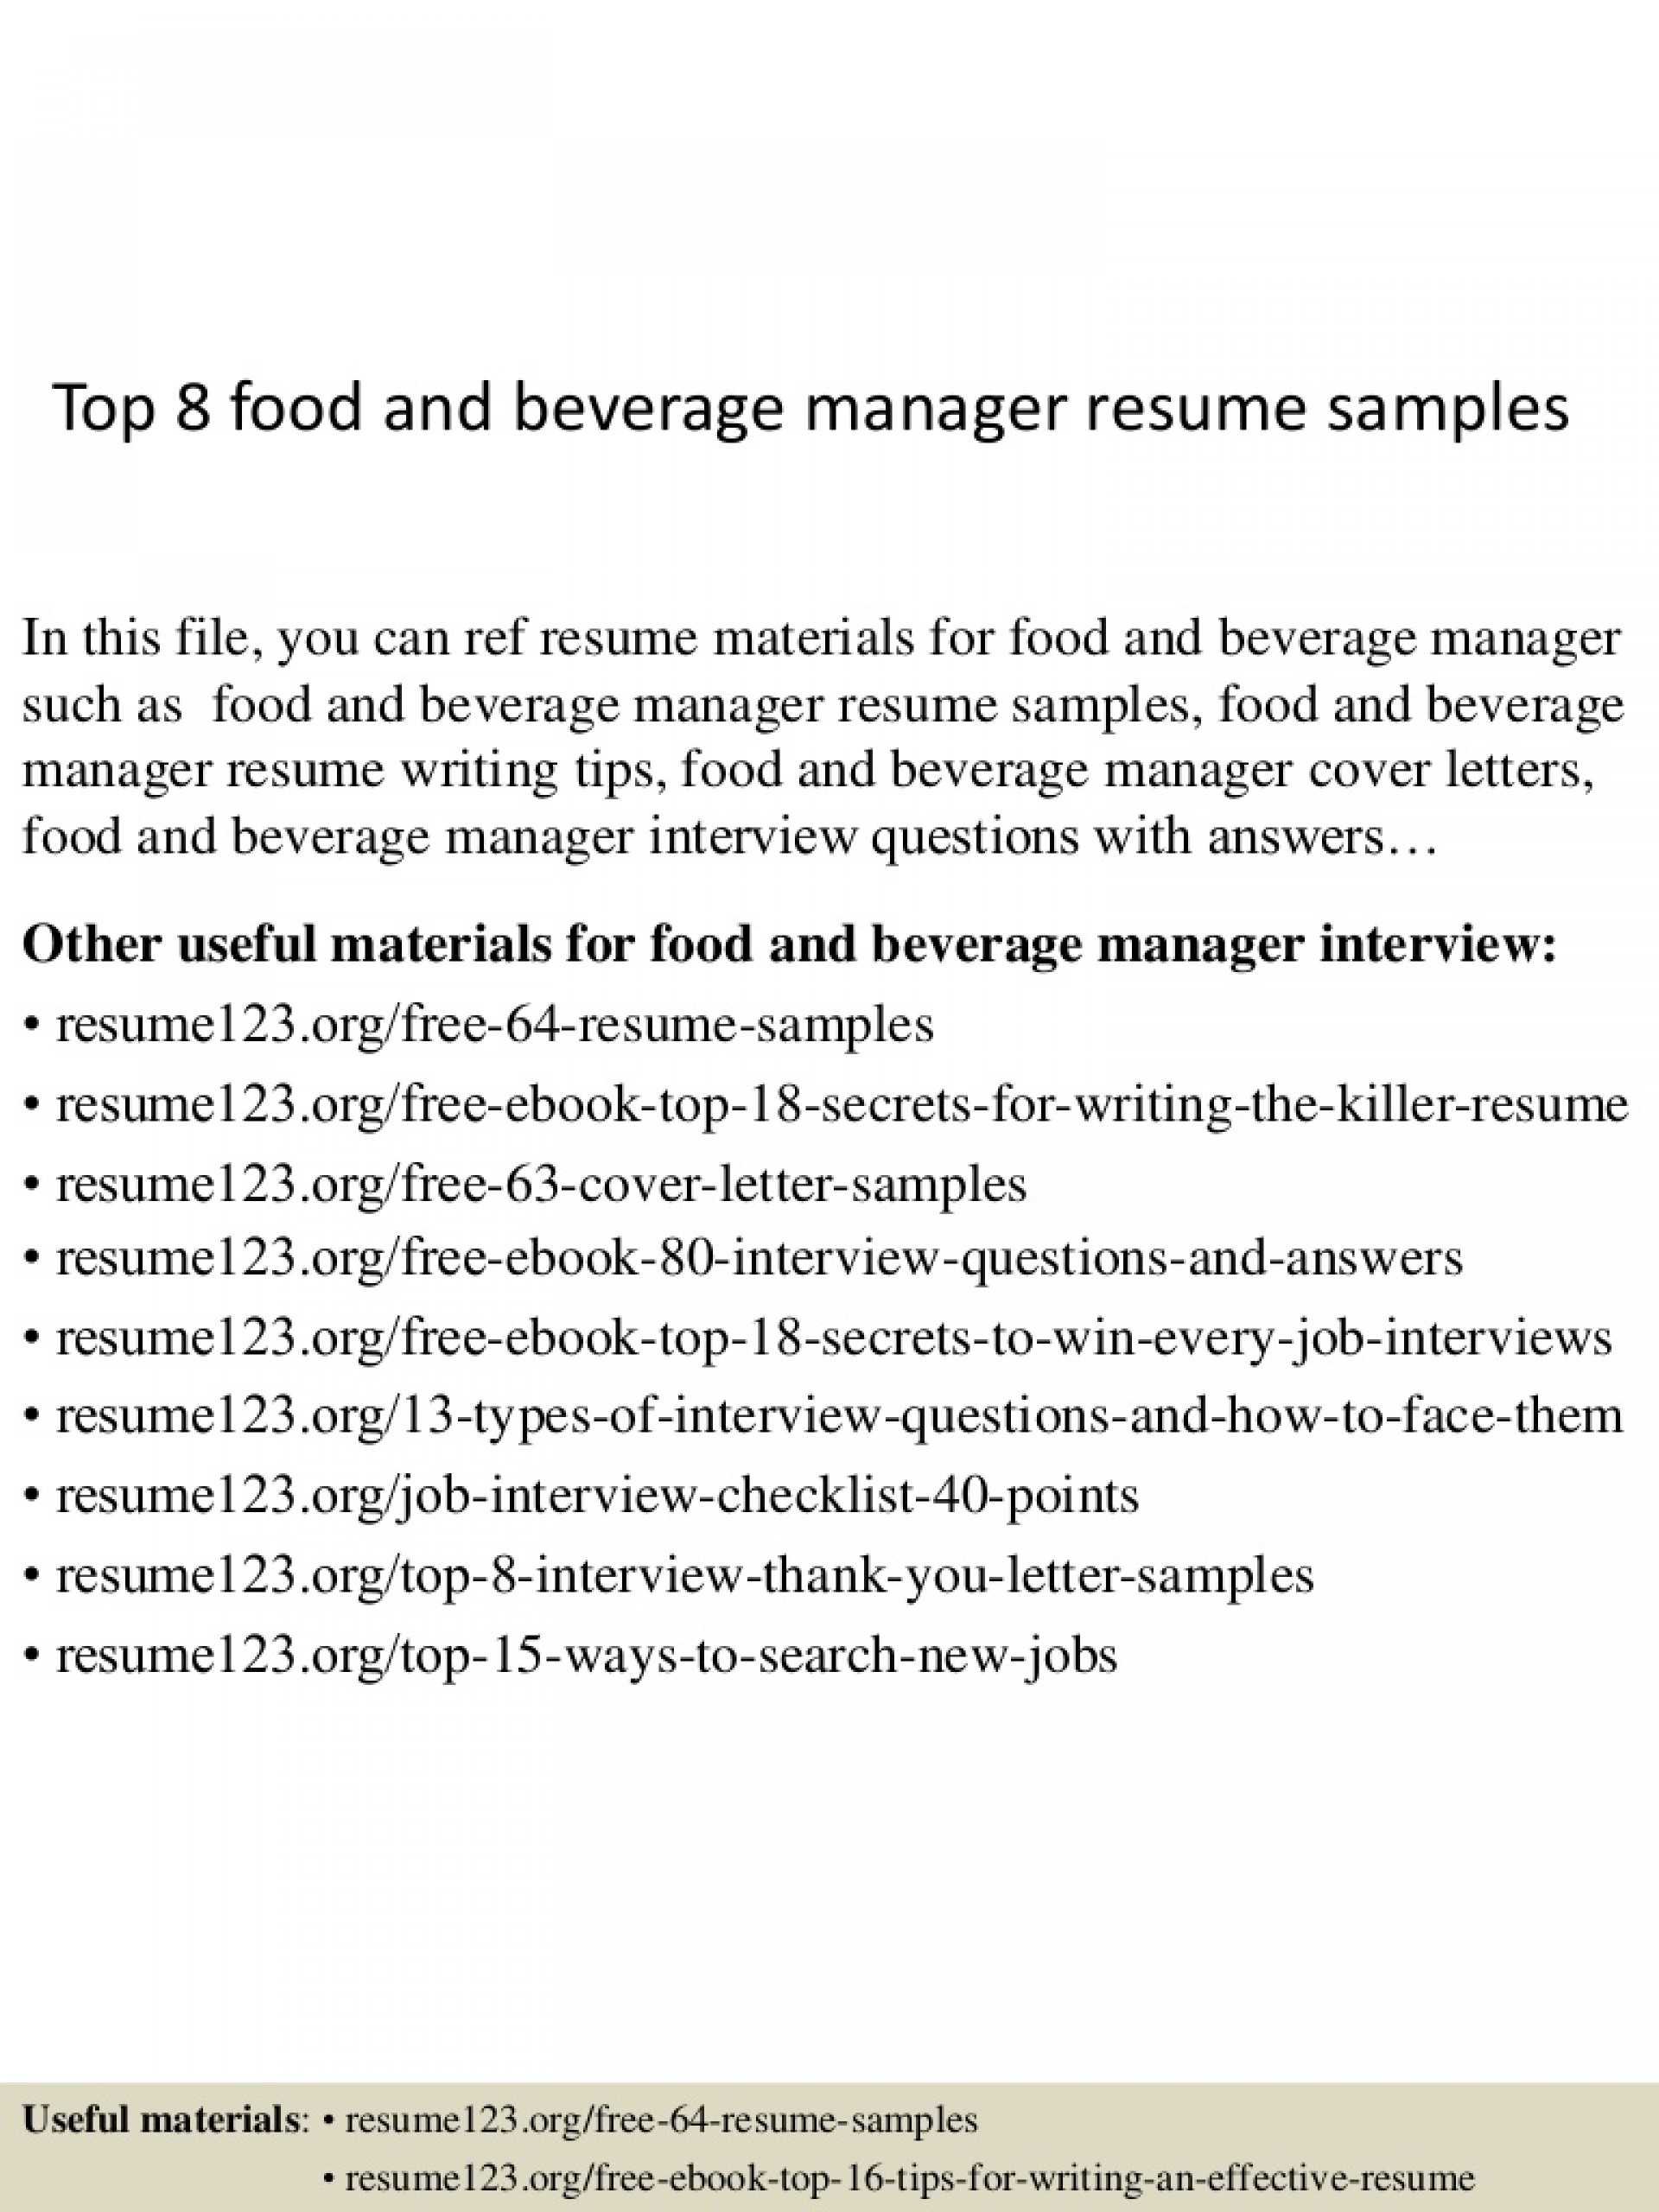 017 Top8foodandbeveragemanagerresumesamples Conversion Gate02 Thumbnail 4cbu003d1429946005 Research Paper Persuasive Astounding Papers Interesting Topics For 1920